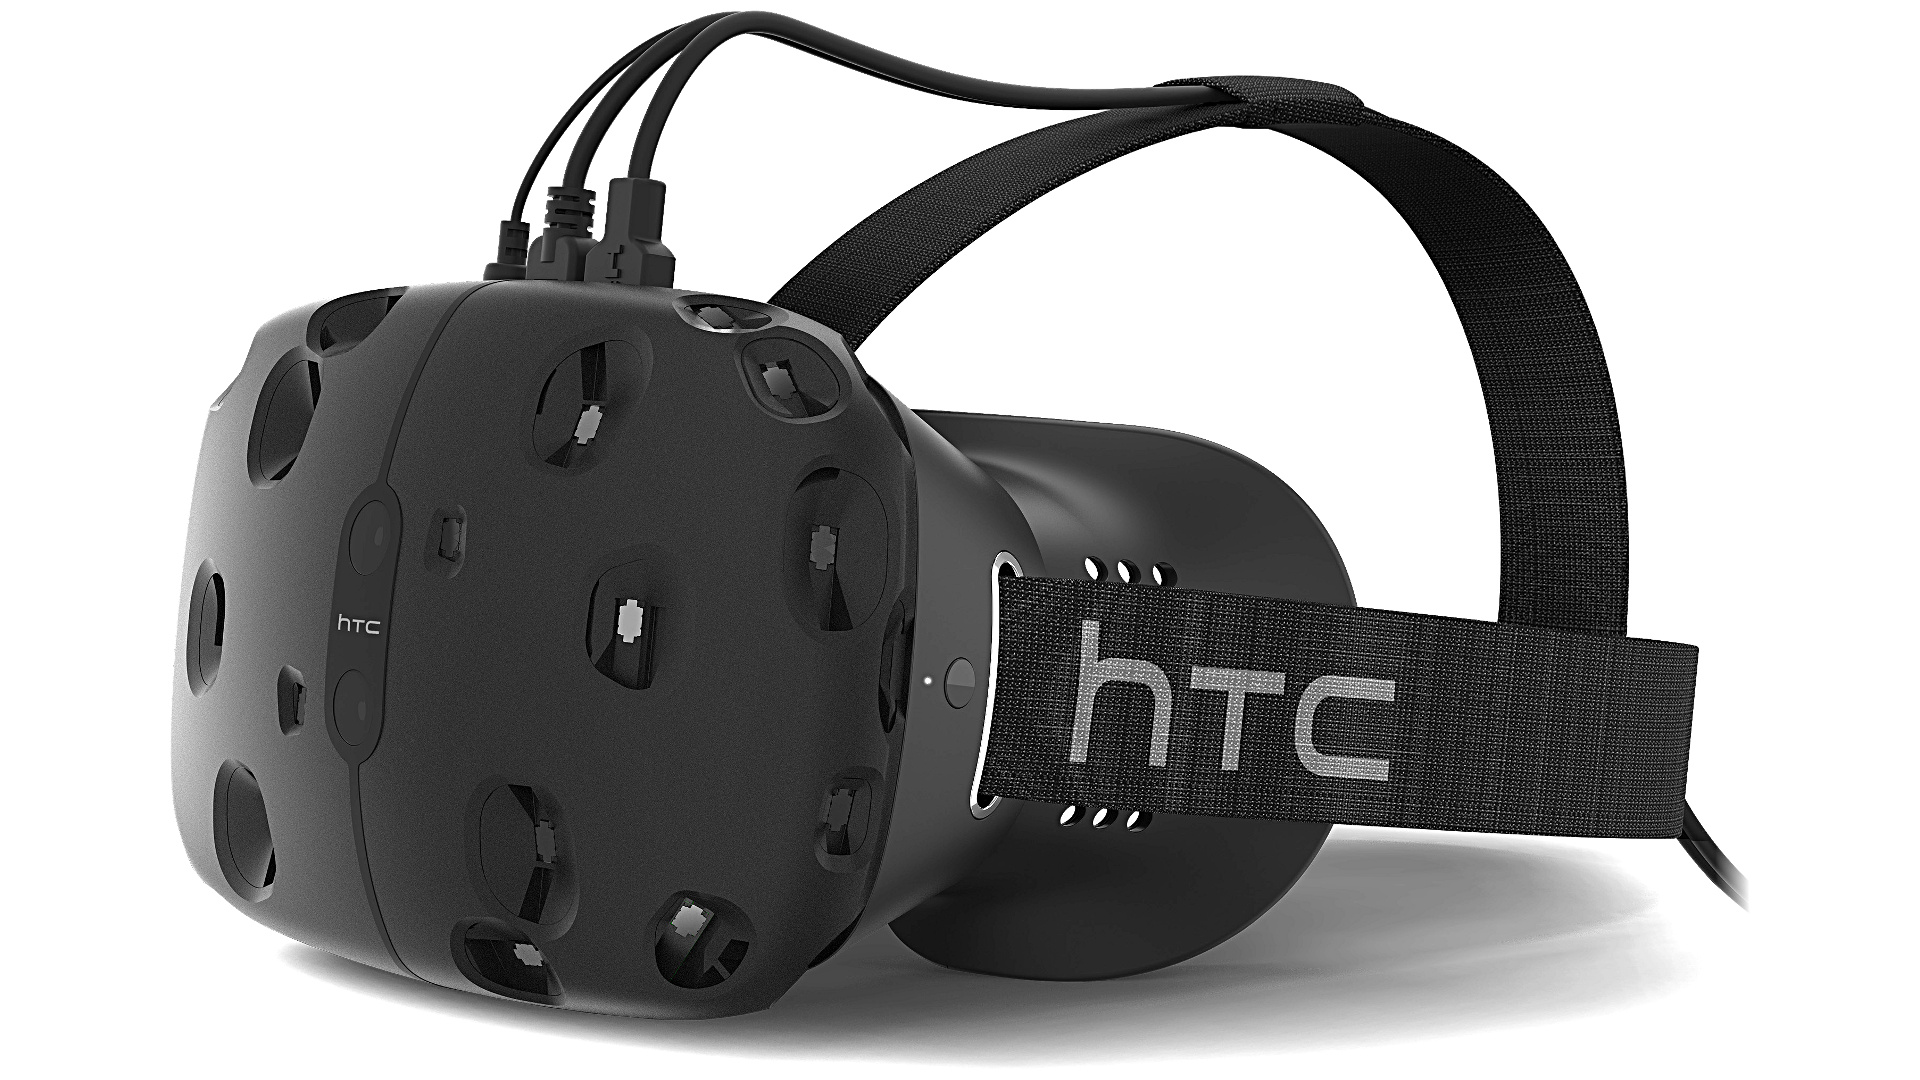 HTC Vive VR Head Mounted Display